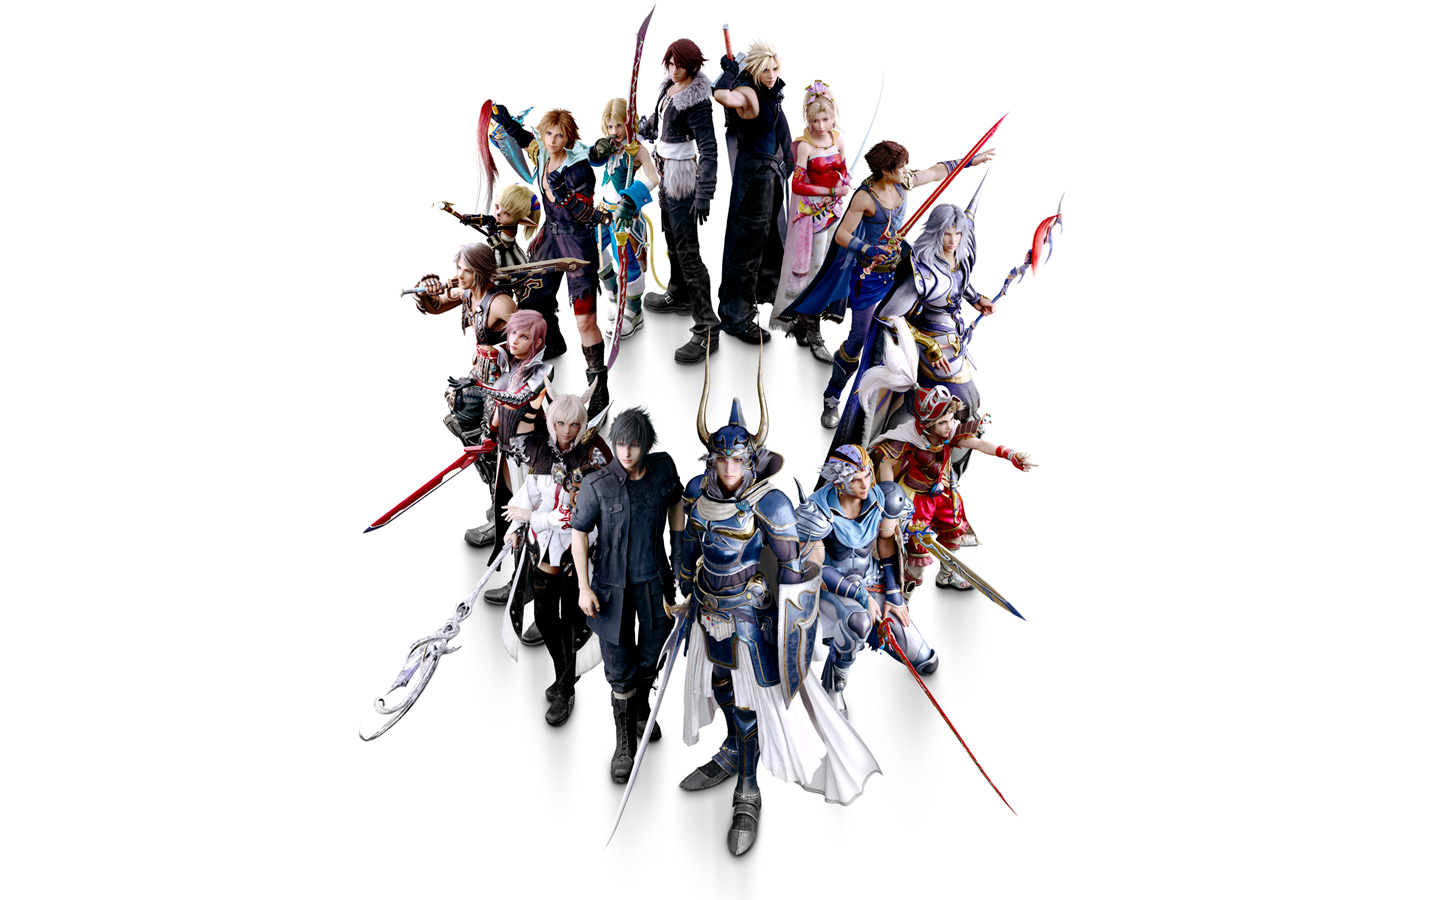 Free Dissidia Final Fantasy NT Wallpaper in 1440x900